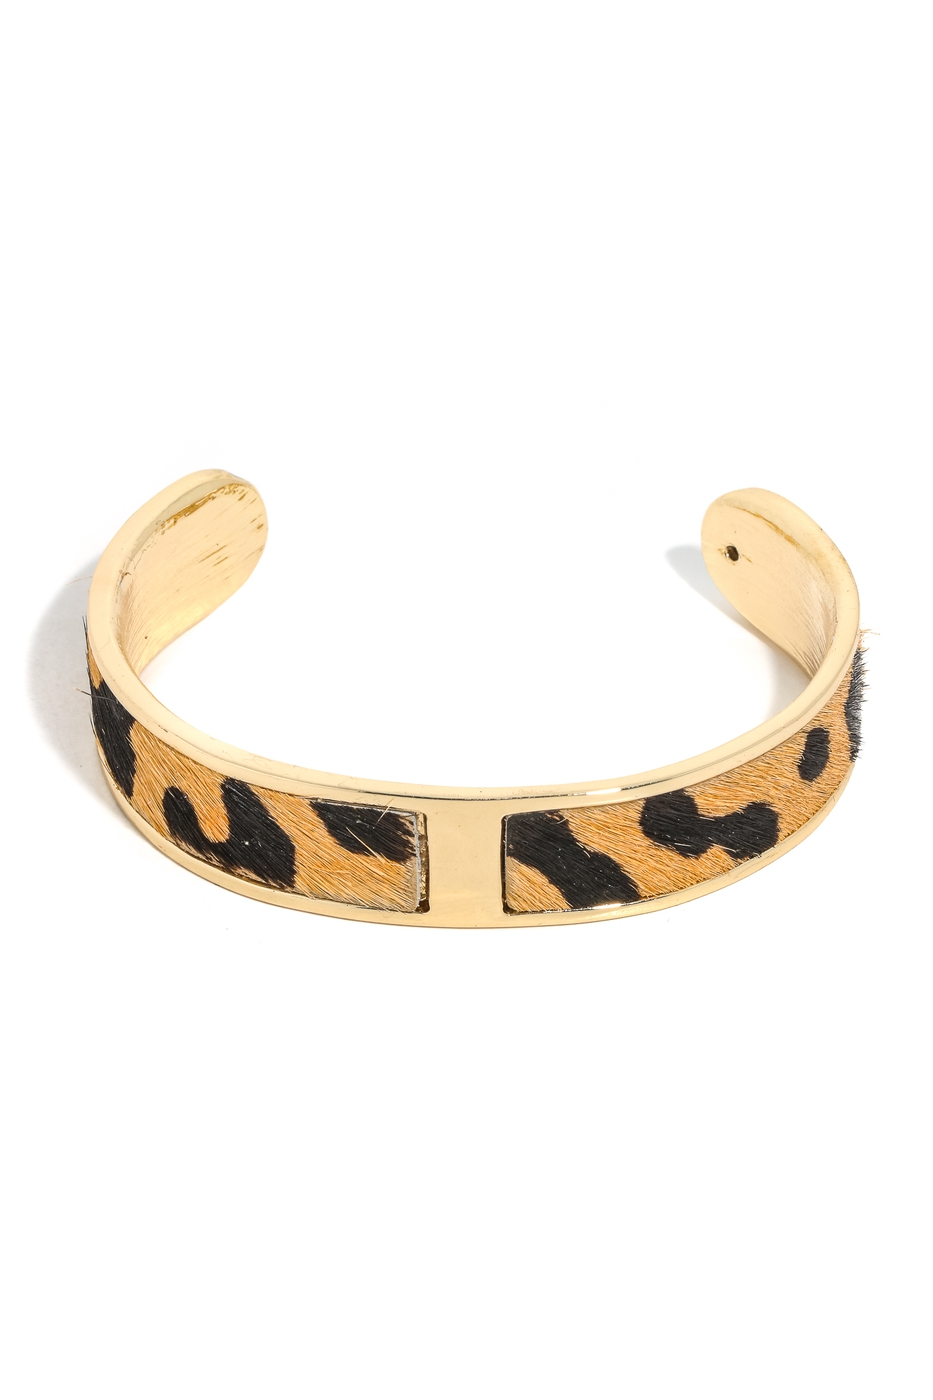 Animal Print Bar Cuff Bracelet - orangeshine.com